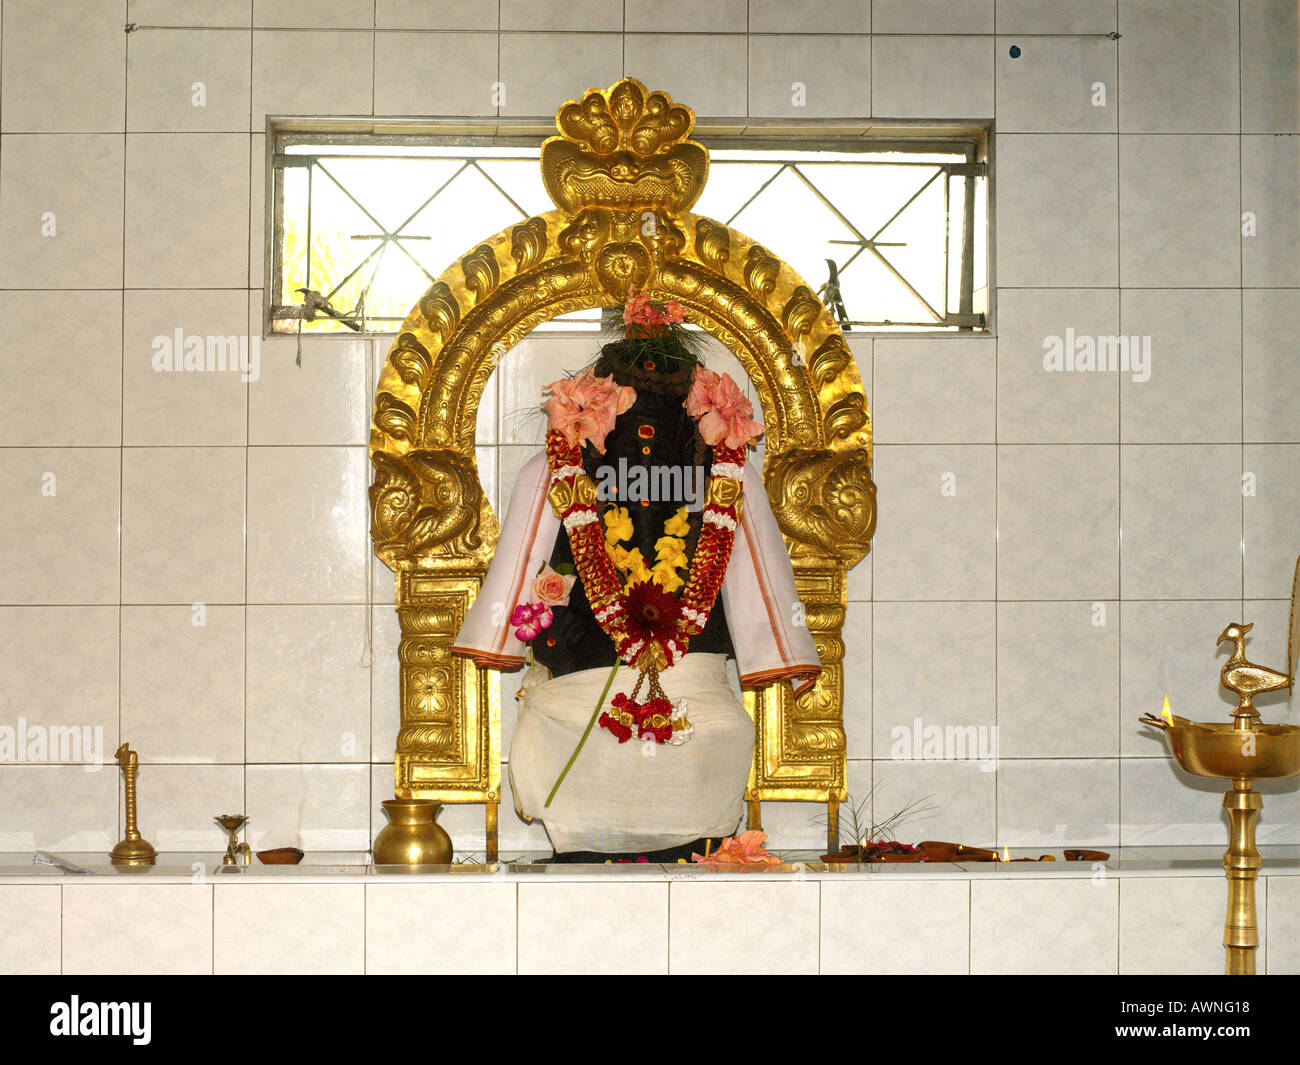 Mauritius Hindu Statue of Shiva in Tamil Temple - Stock Image